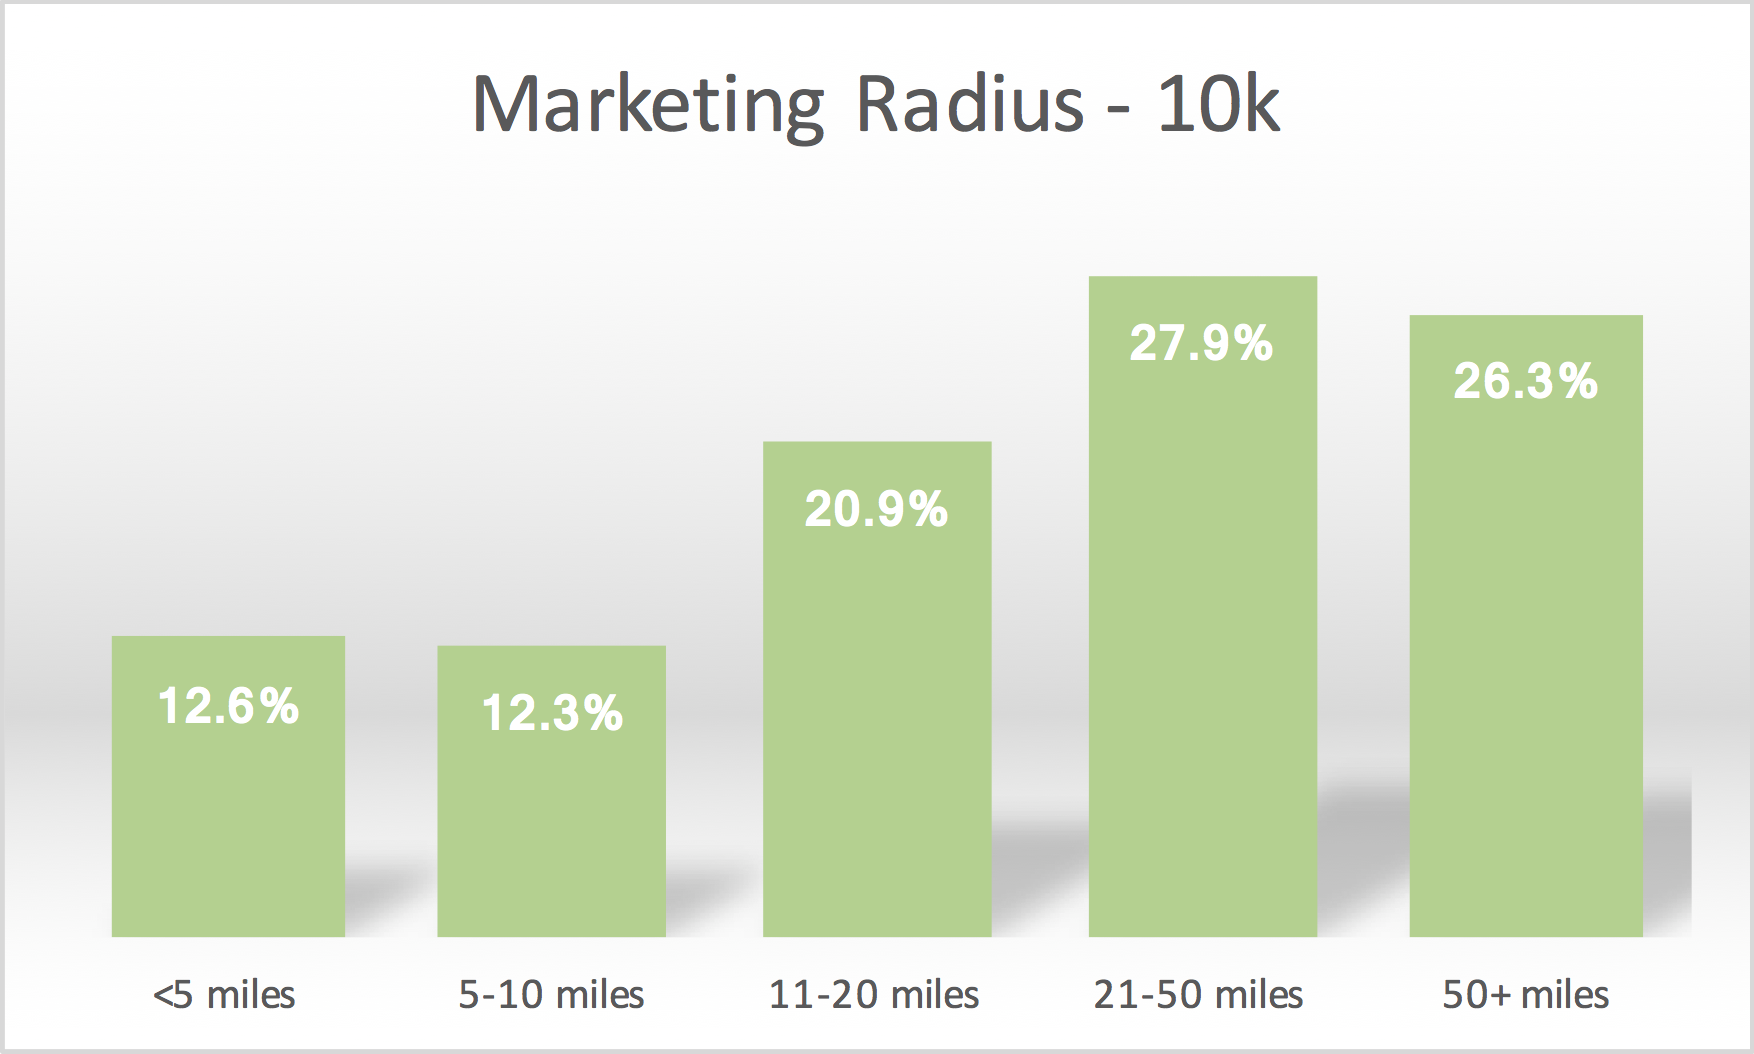 Marketing Radius - 10k